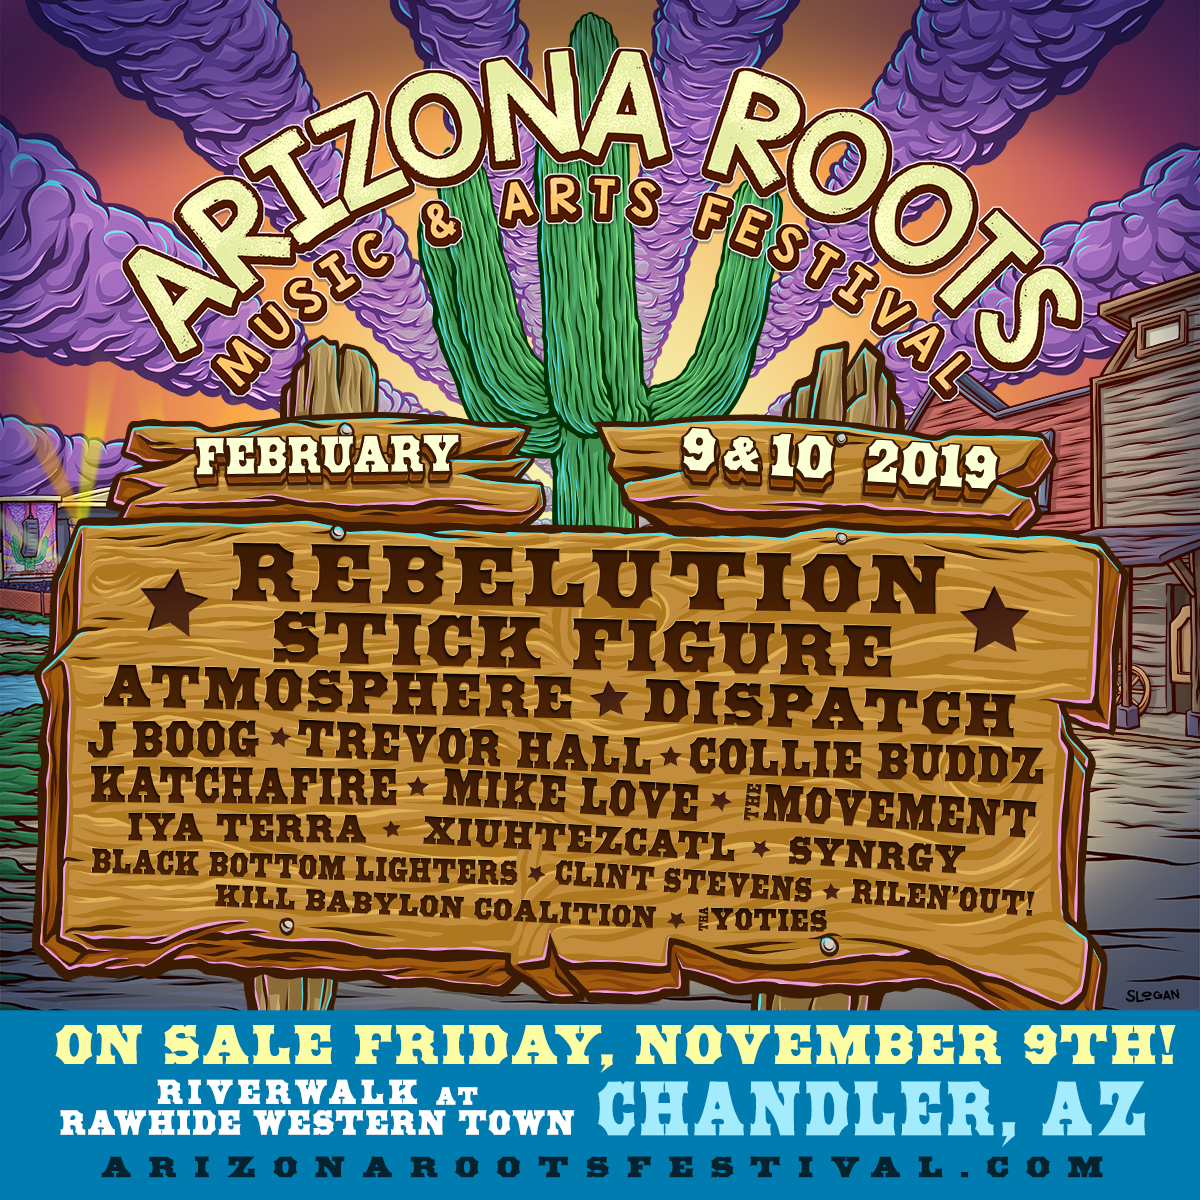 Flyer for Arizona Roots 2019